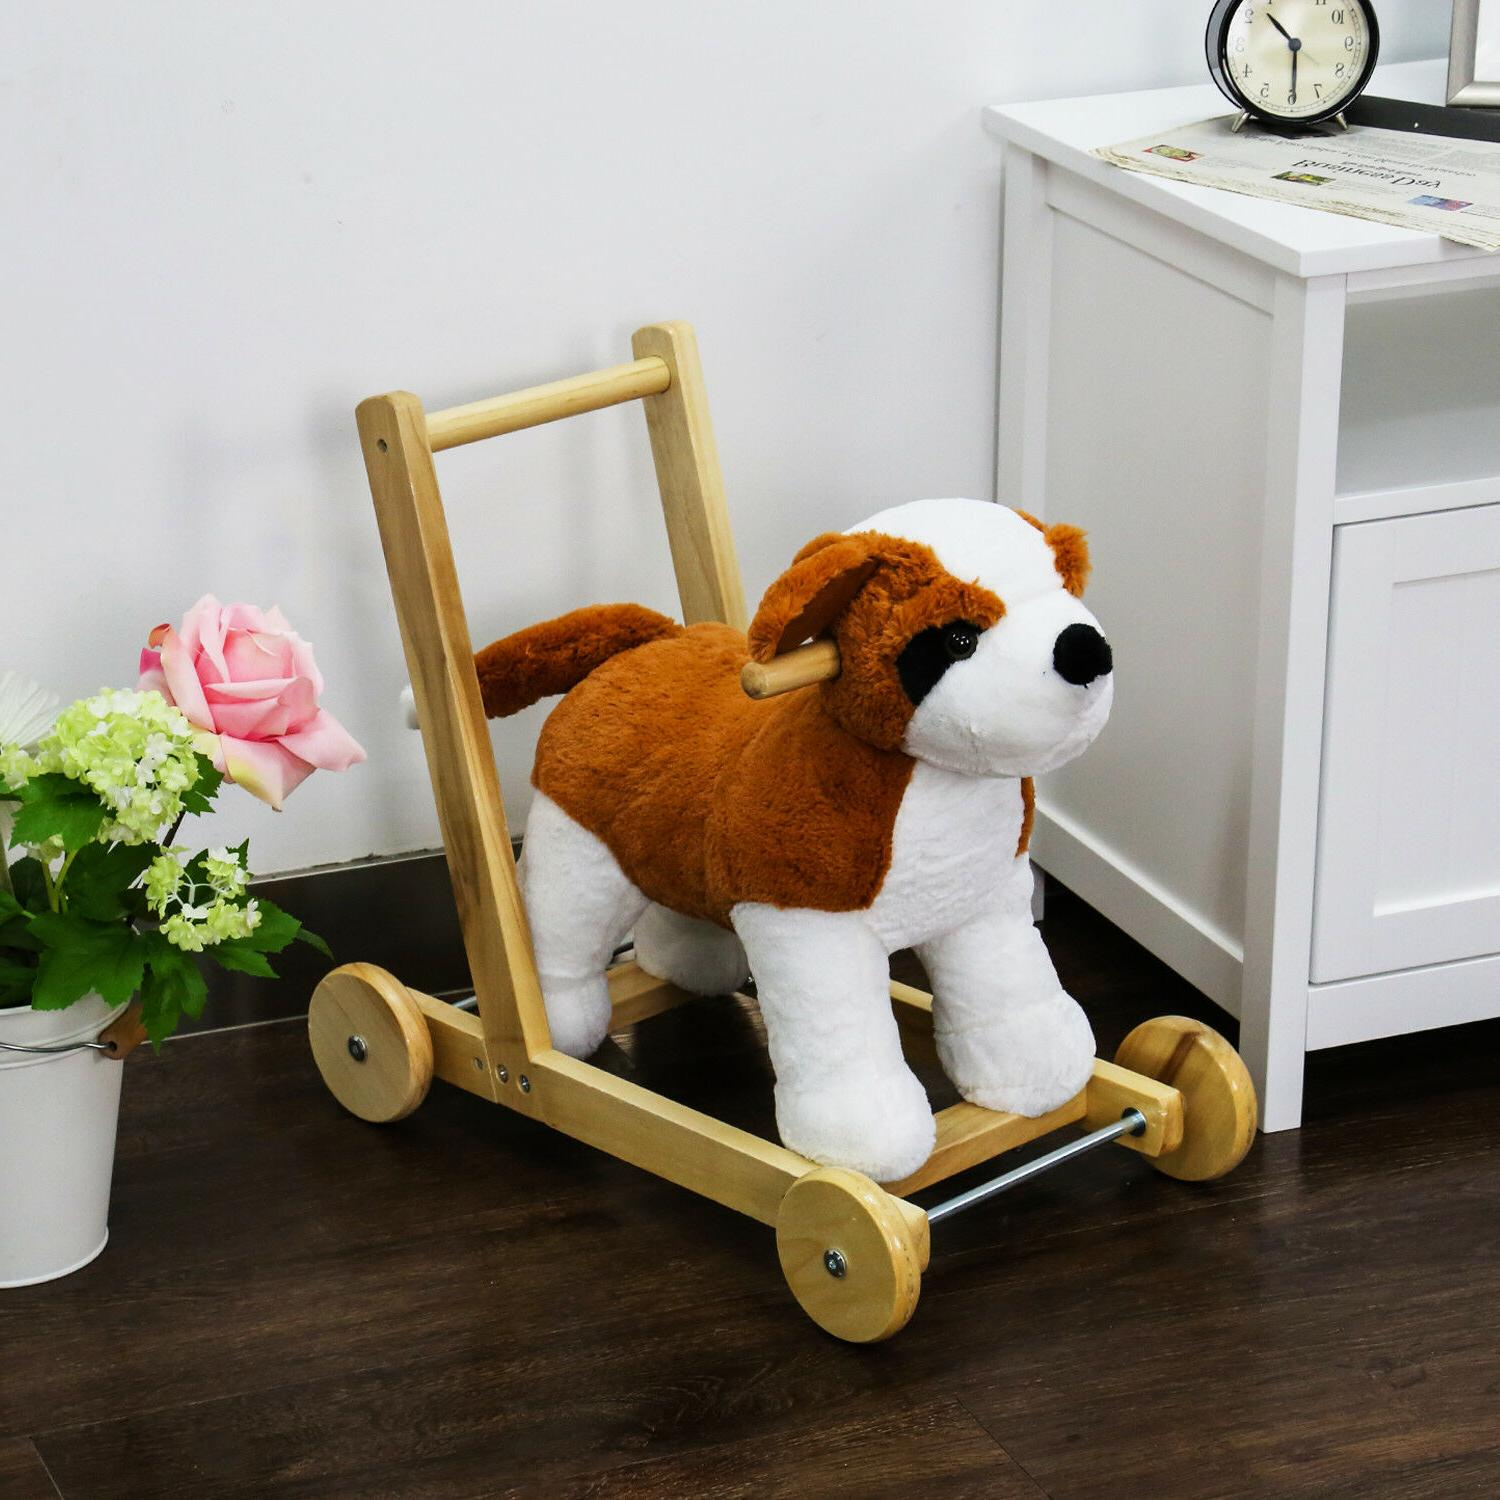 kids ride on toy pony dog theme